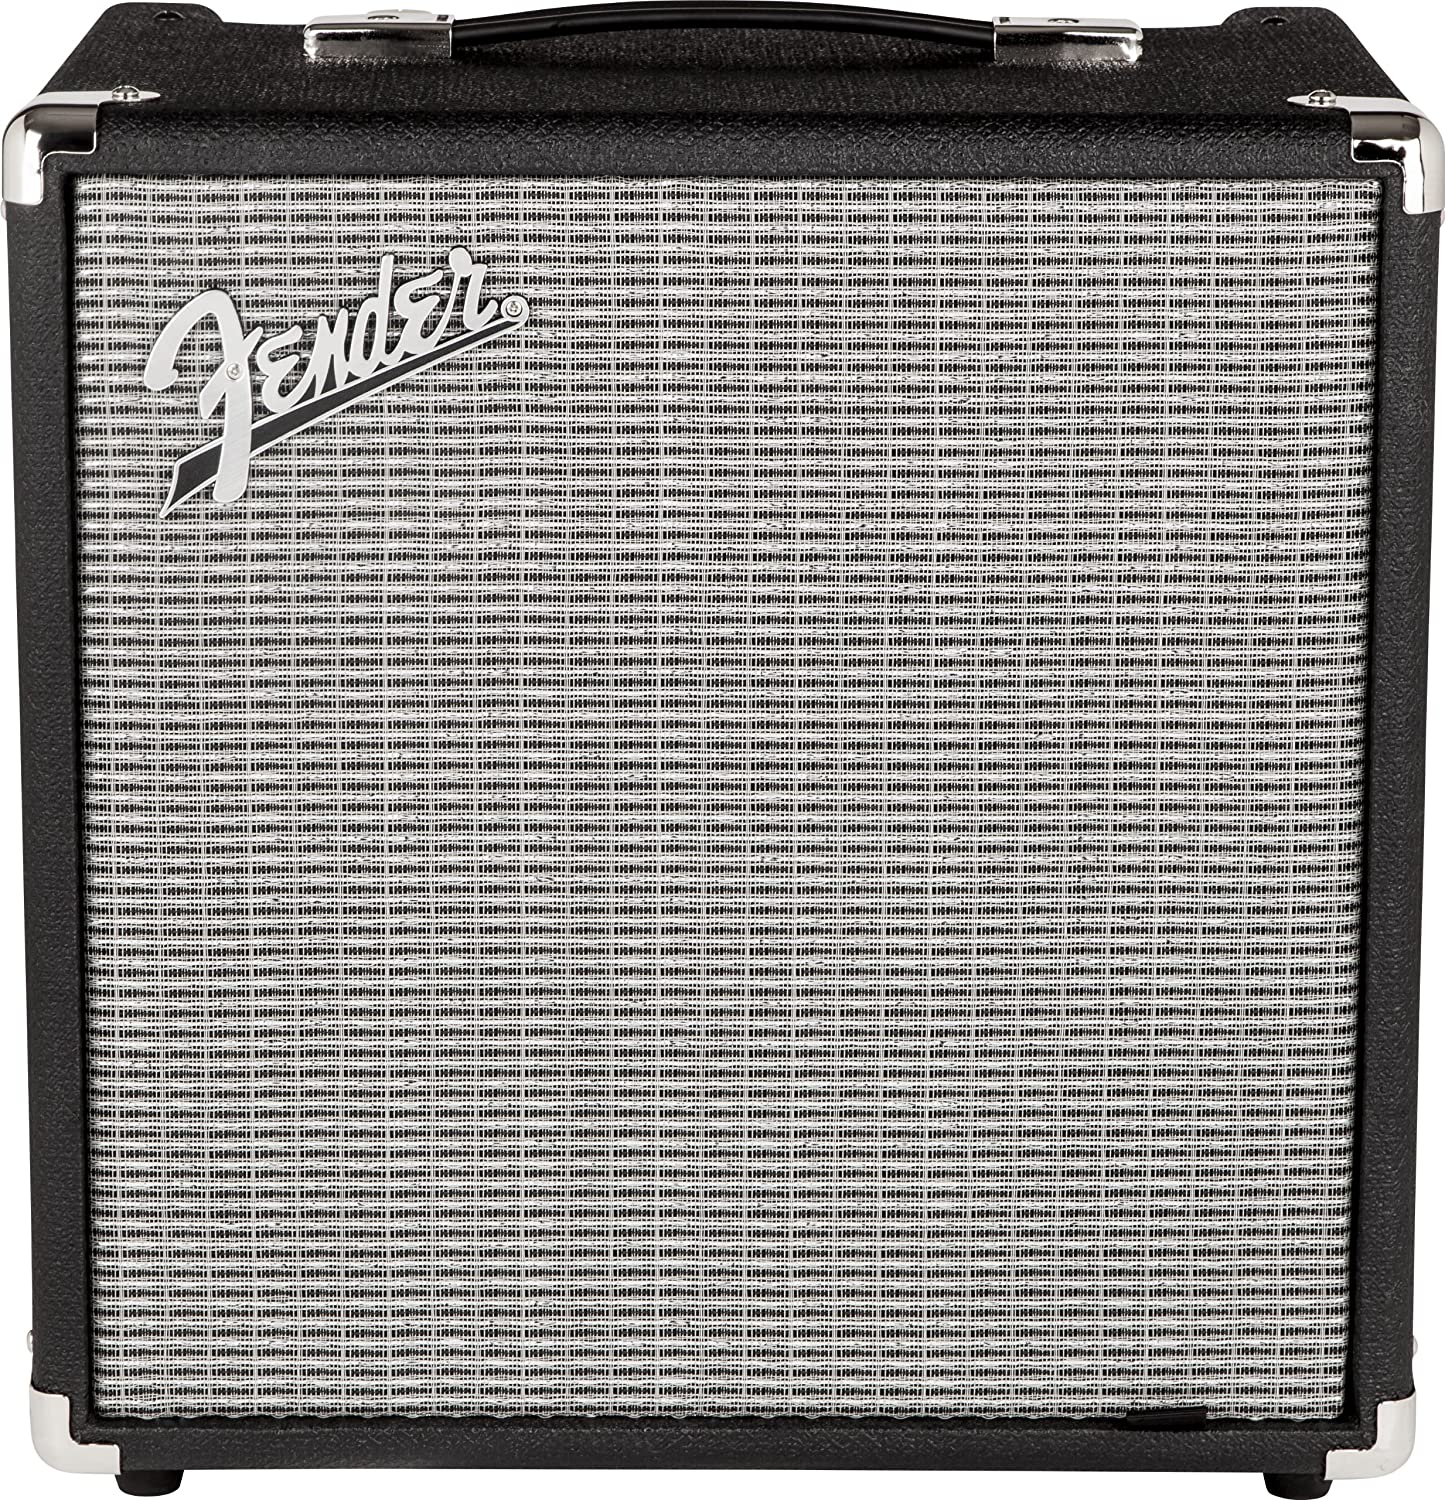 1. Fender Rumble 25 v3 Bass Combo Amplifier